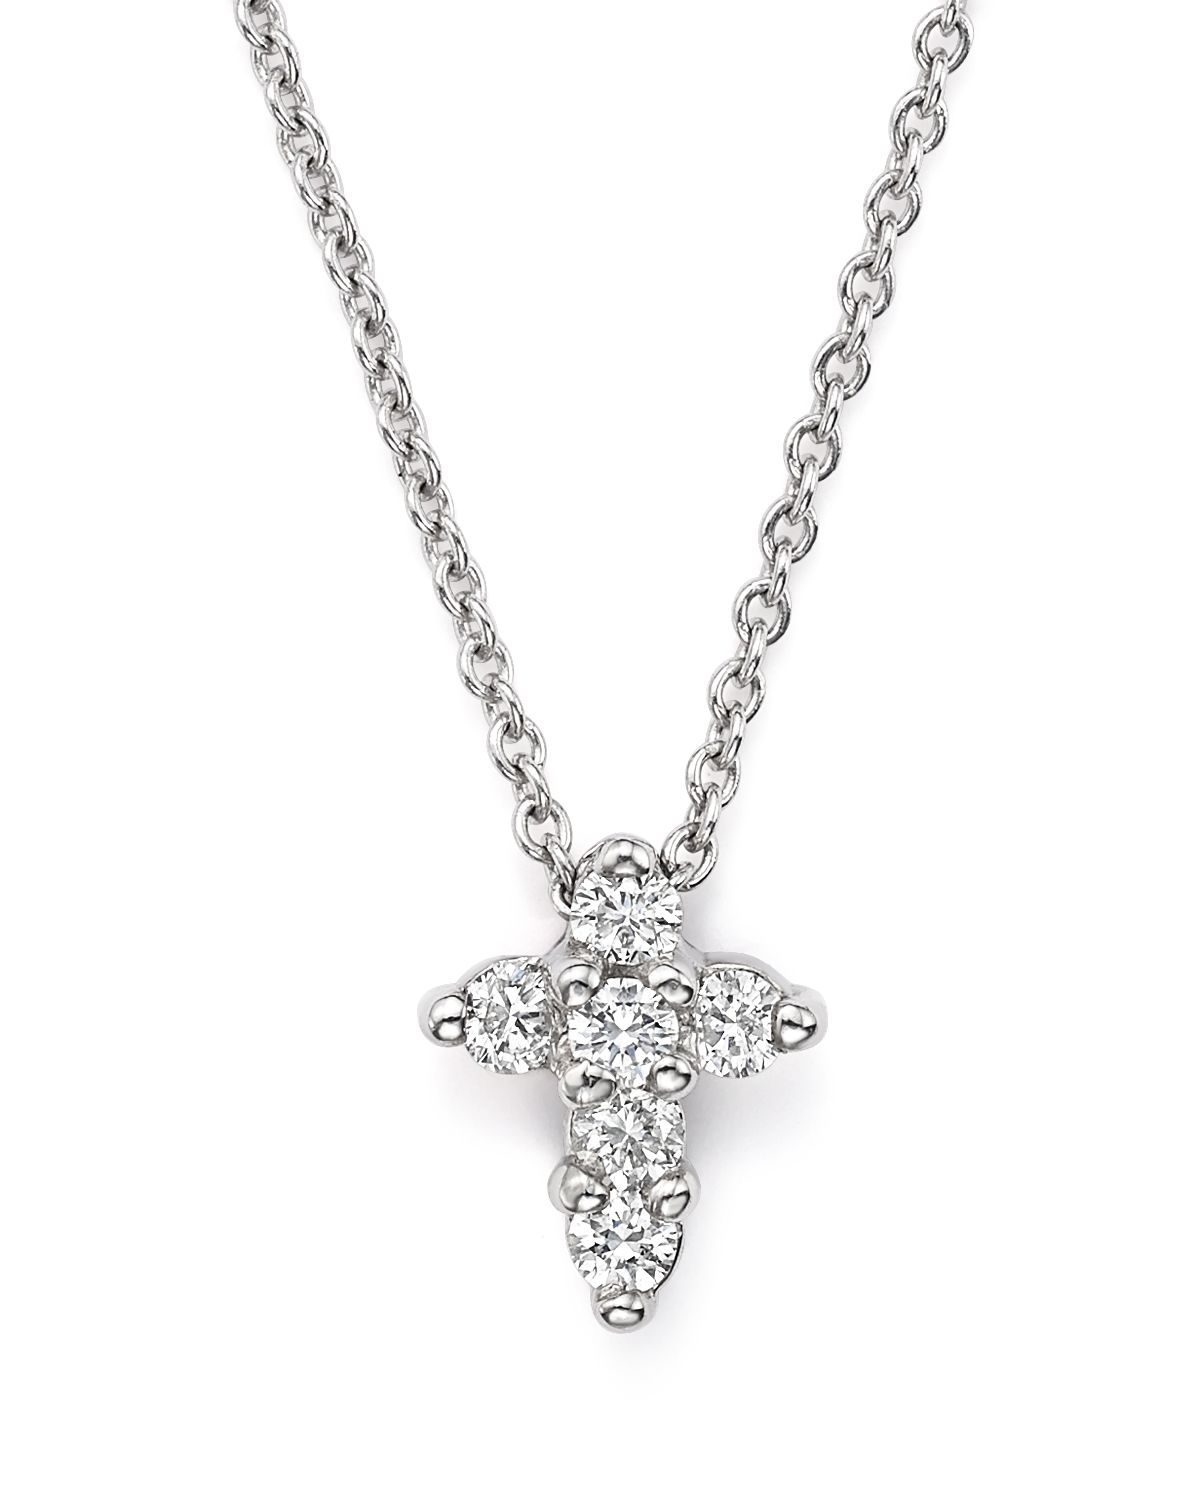 Roberto Coin 16 White Gold Med Diamond Cross Pendant Necklace xF2hpY97mE